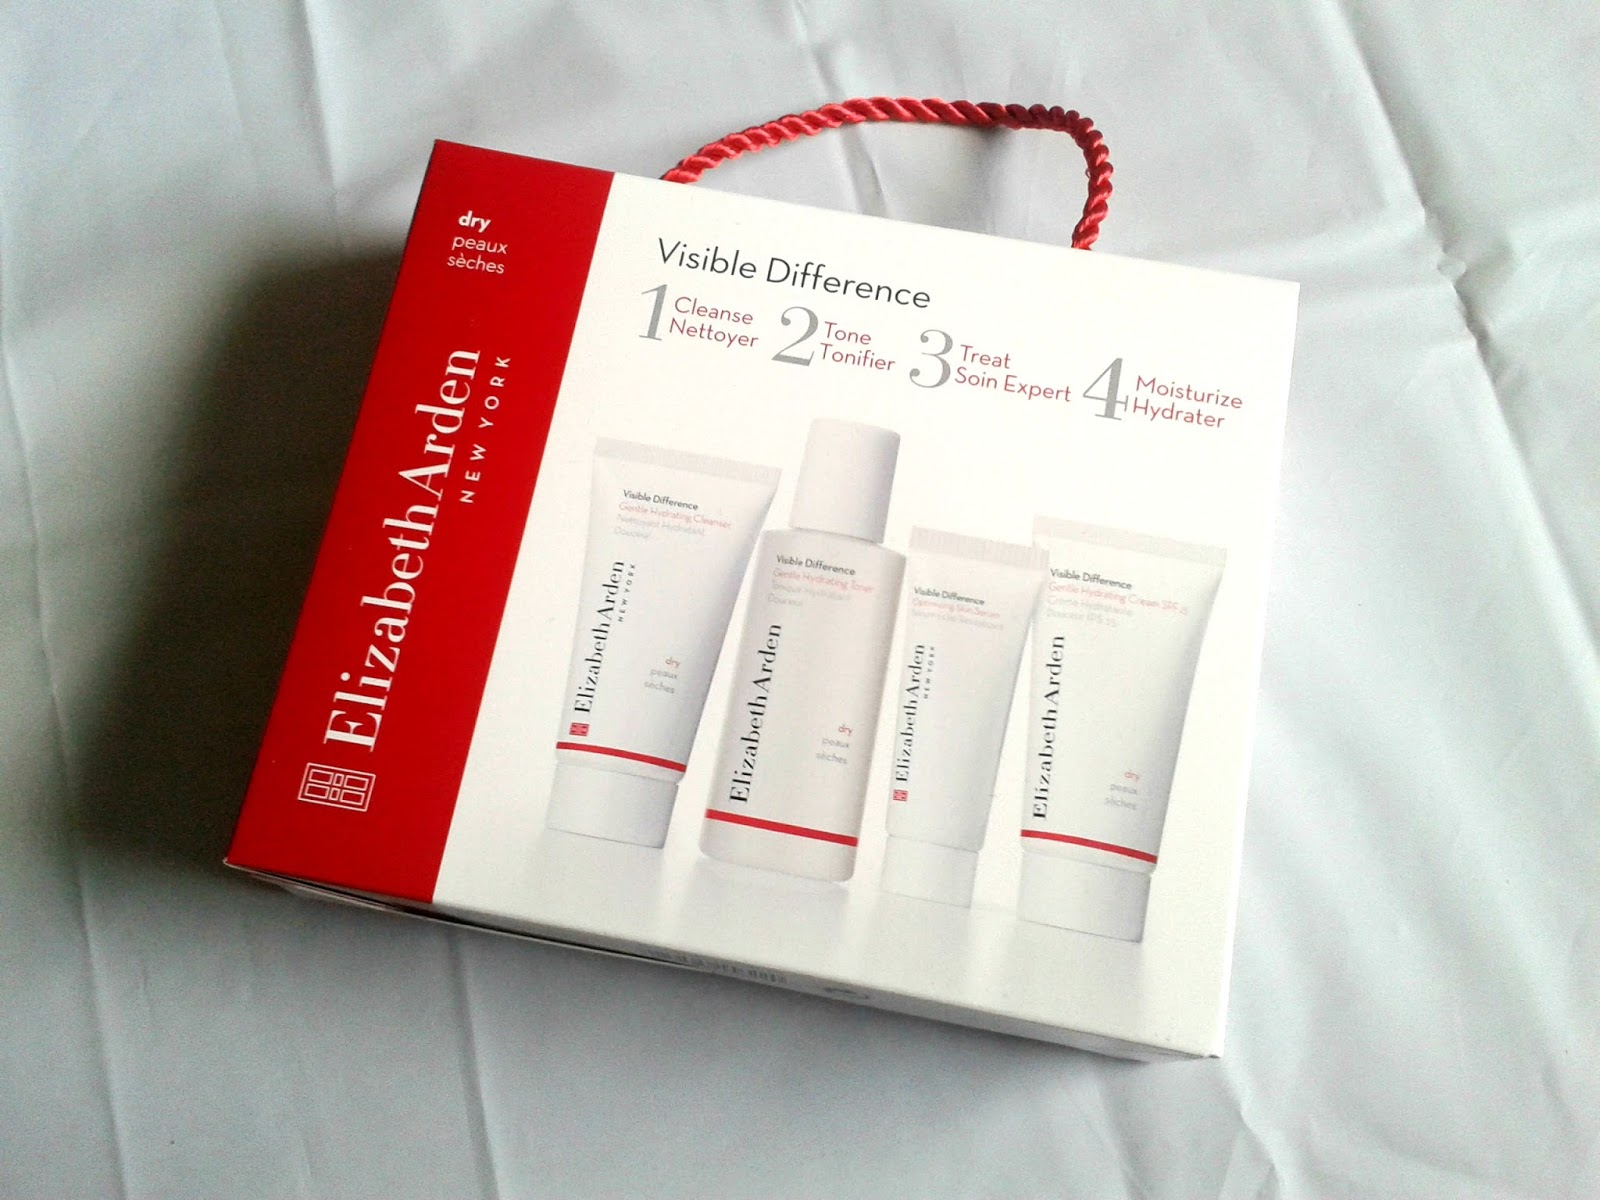 Elizabeth Arden Visible Difference Dry Skin Set